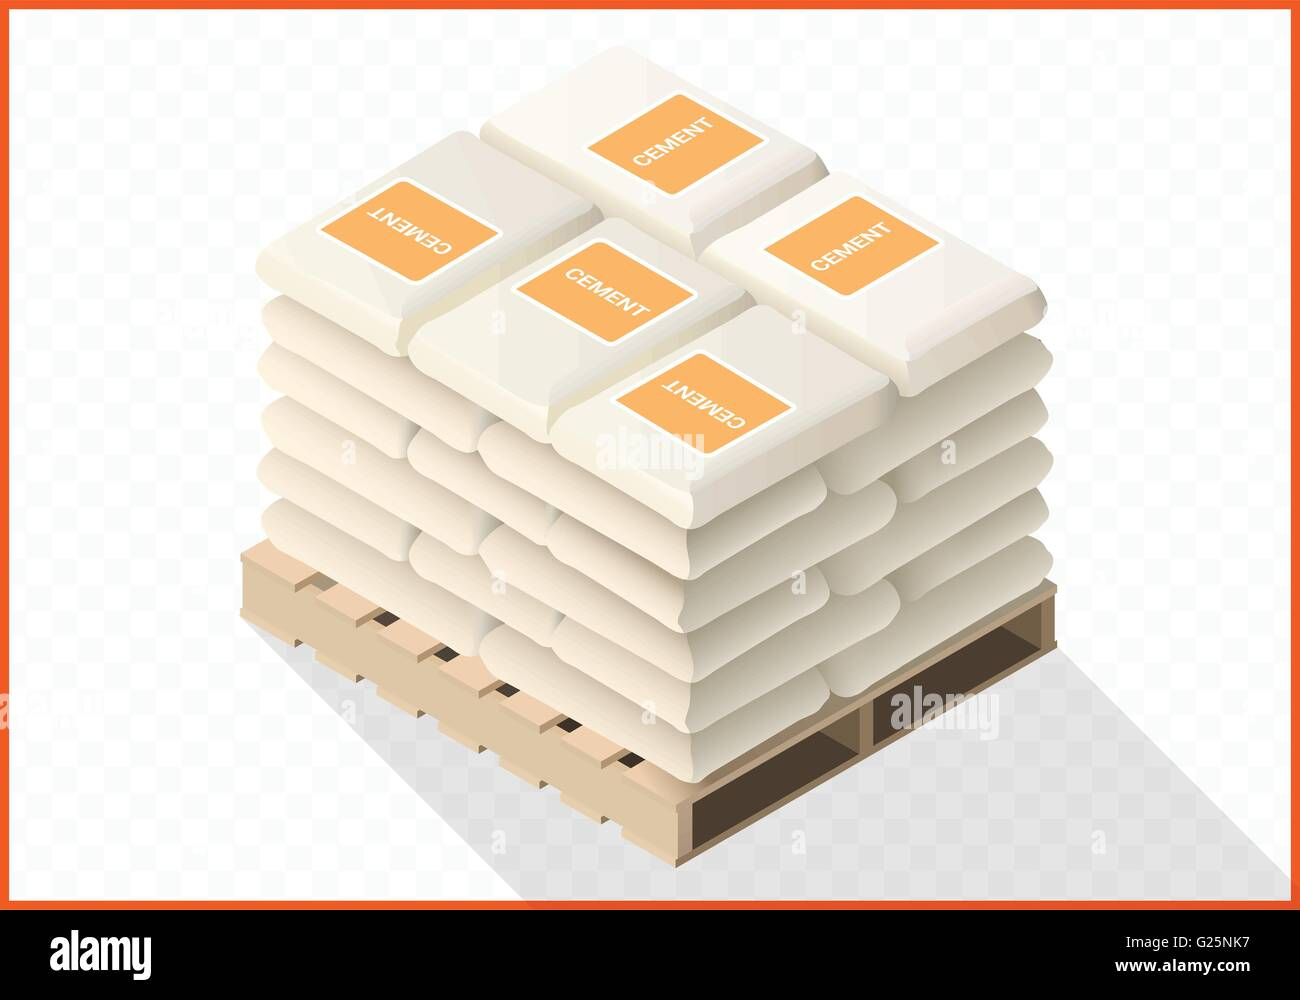 Cement sacks stacked isometric view - Stock Vector